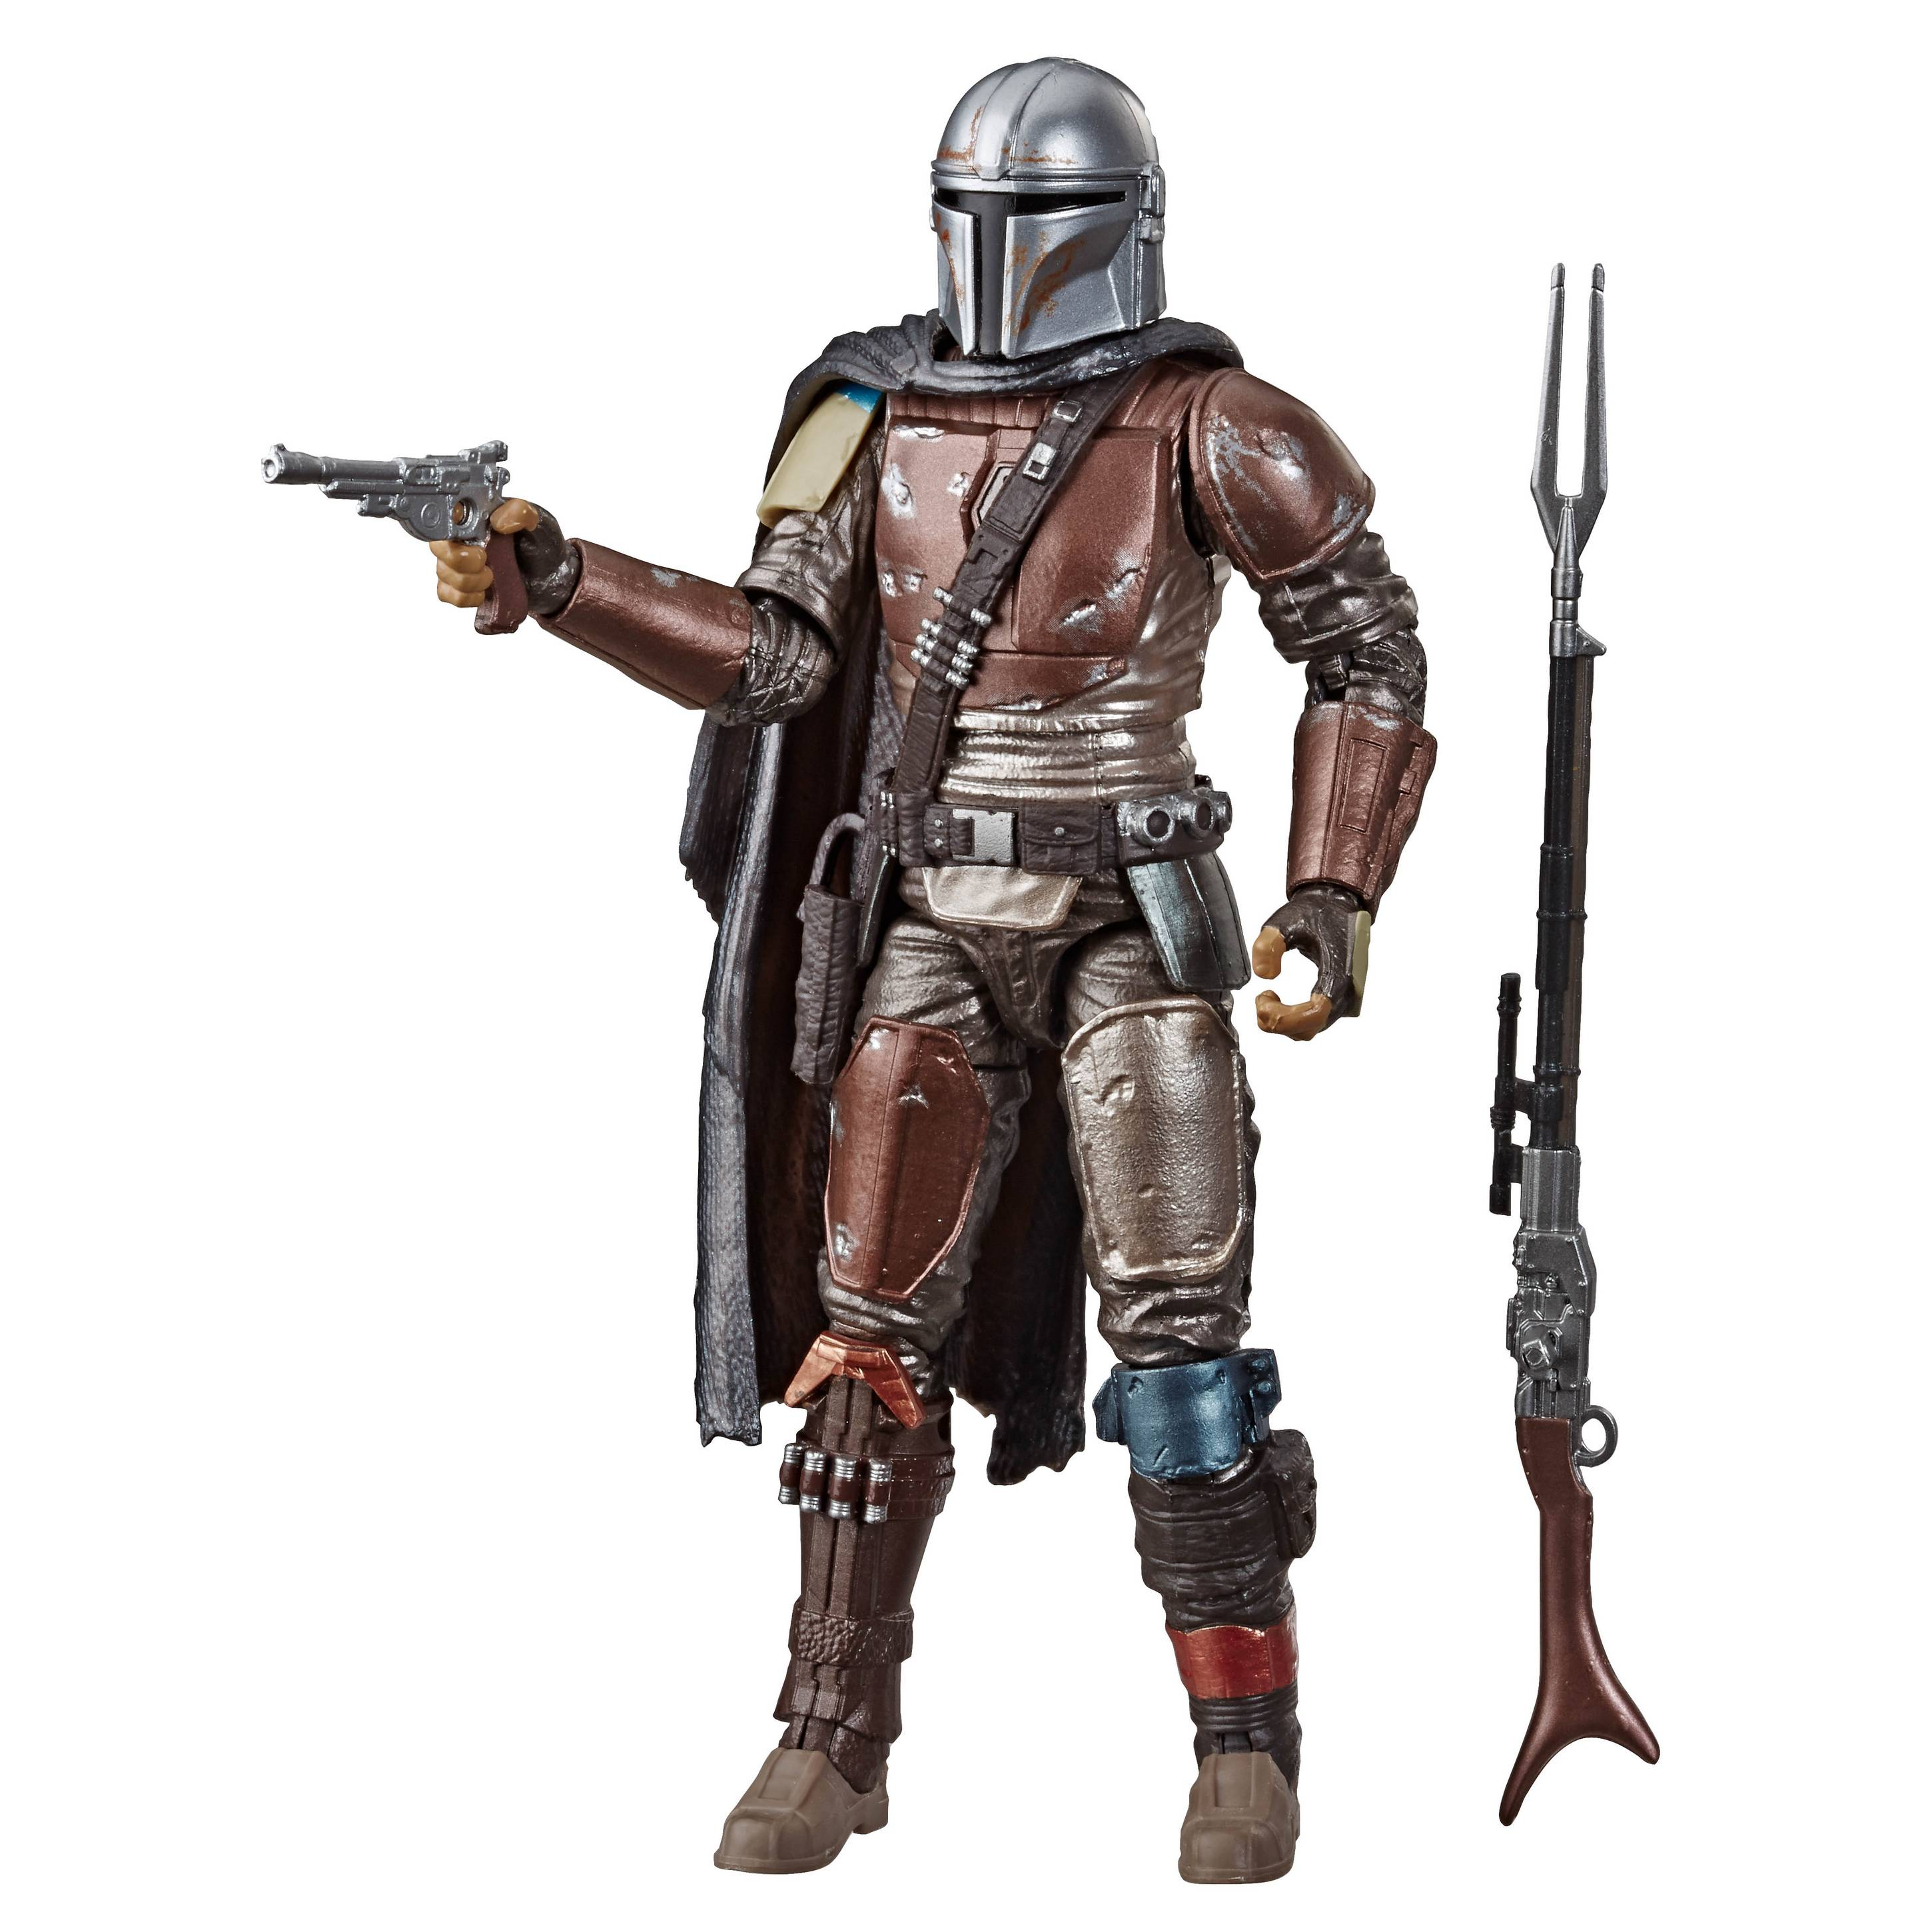 STAR-WARS-THE-BLACK-SERIES-6-INCH-THE-MANDALORIAN-CARBONIZED-COLLECTION-Figure-oop.jpg